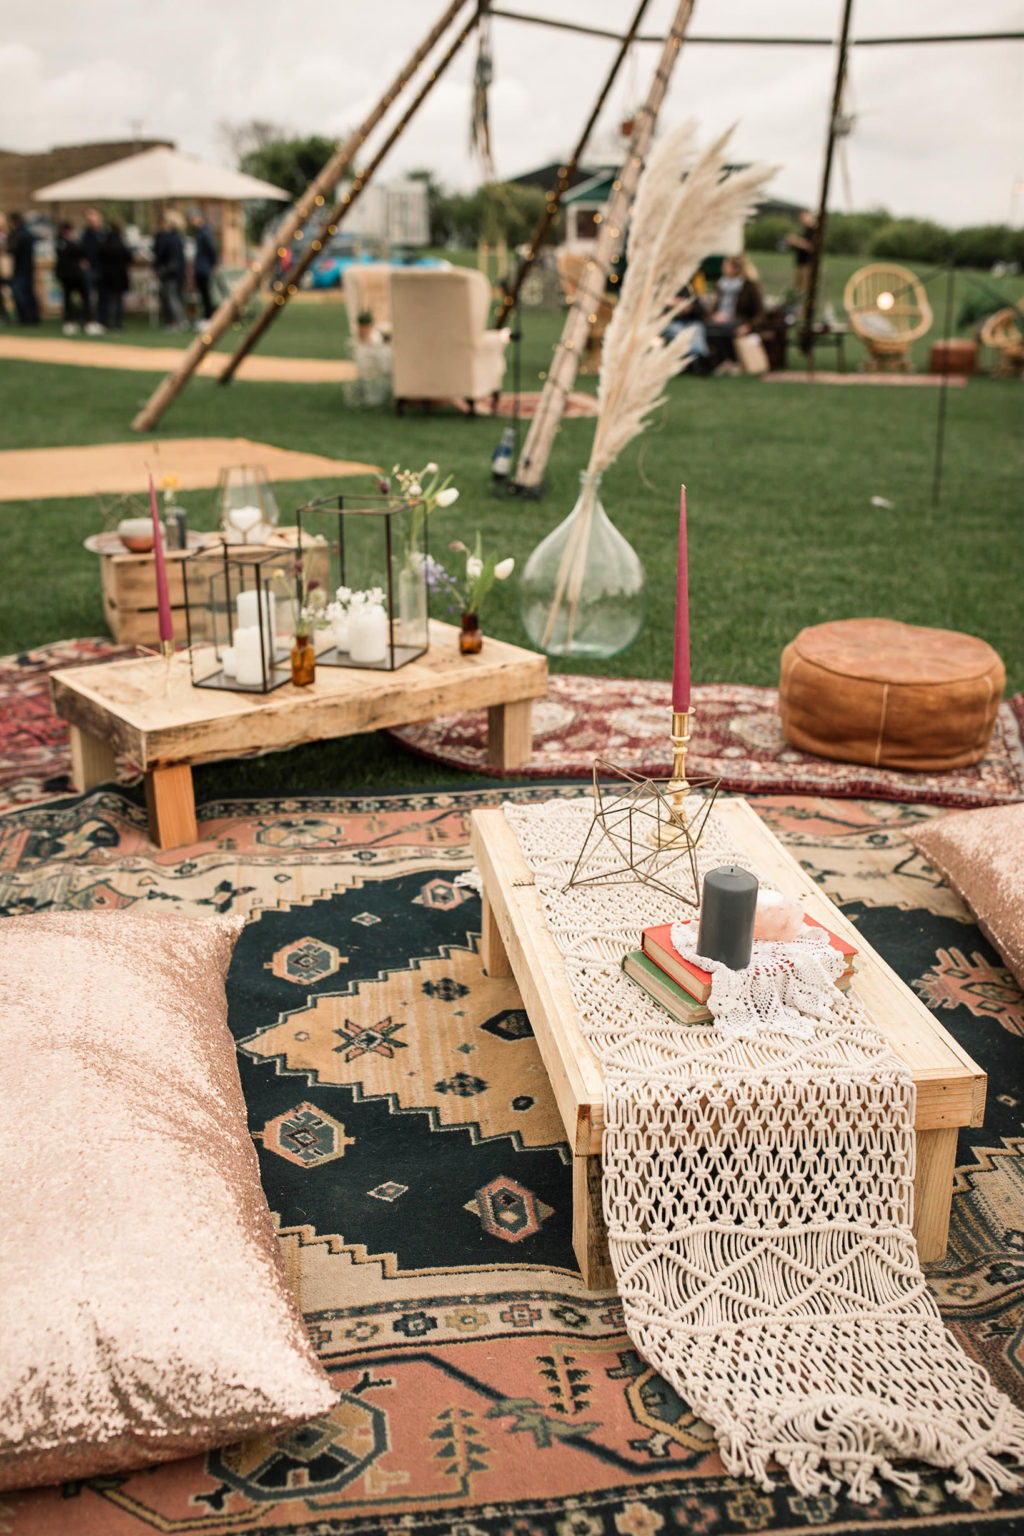 How to create a relaxed, rustic back garden wedding seating ideas